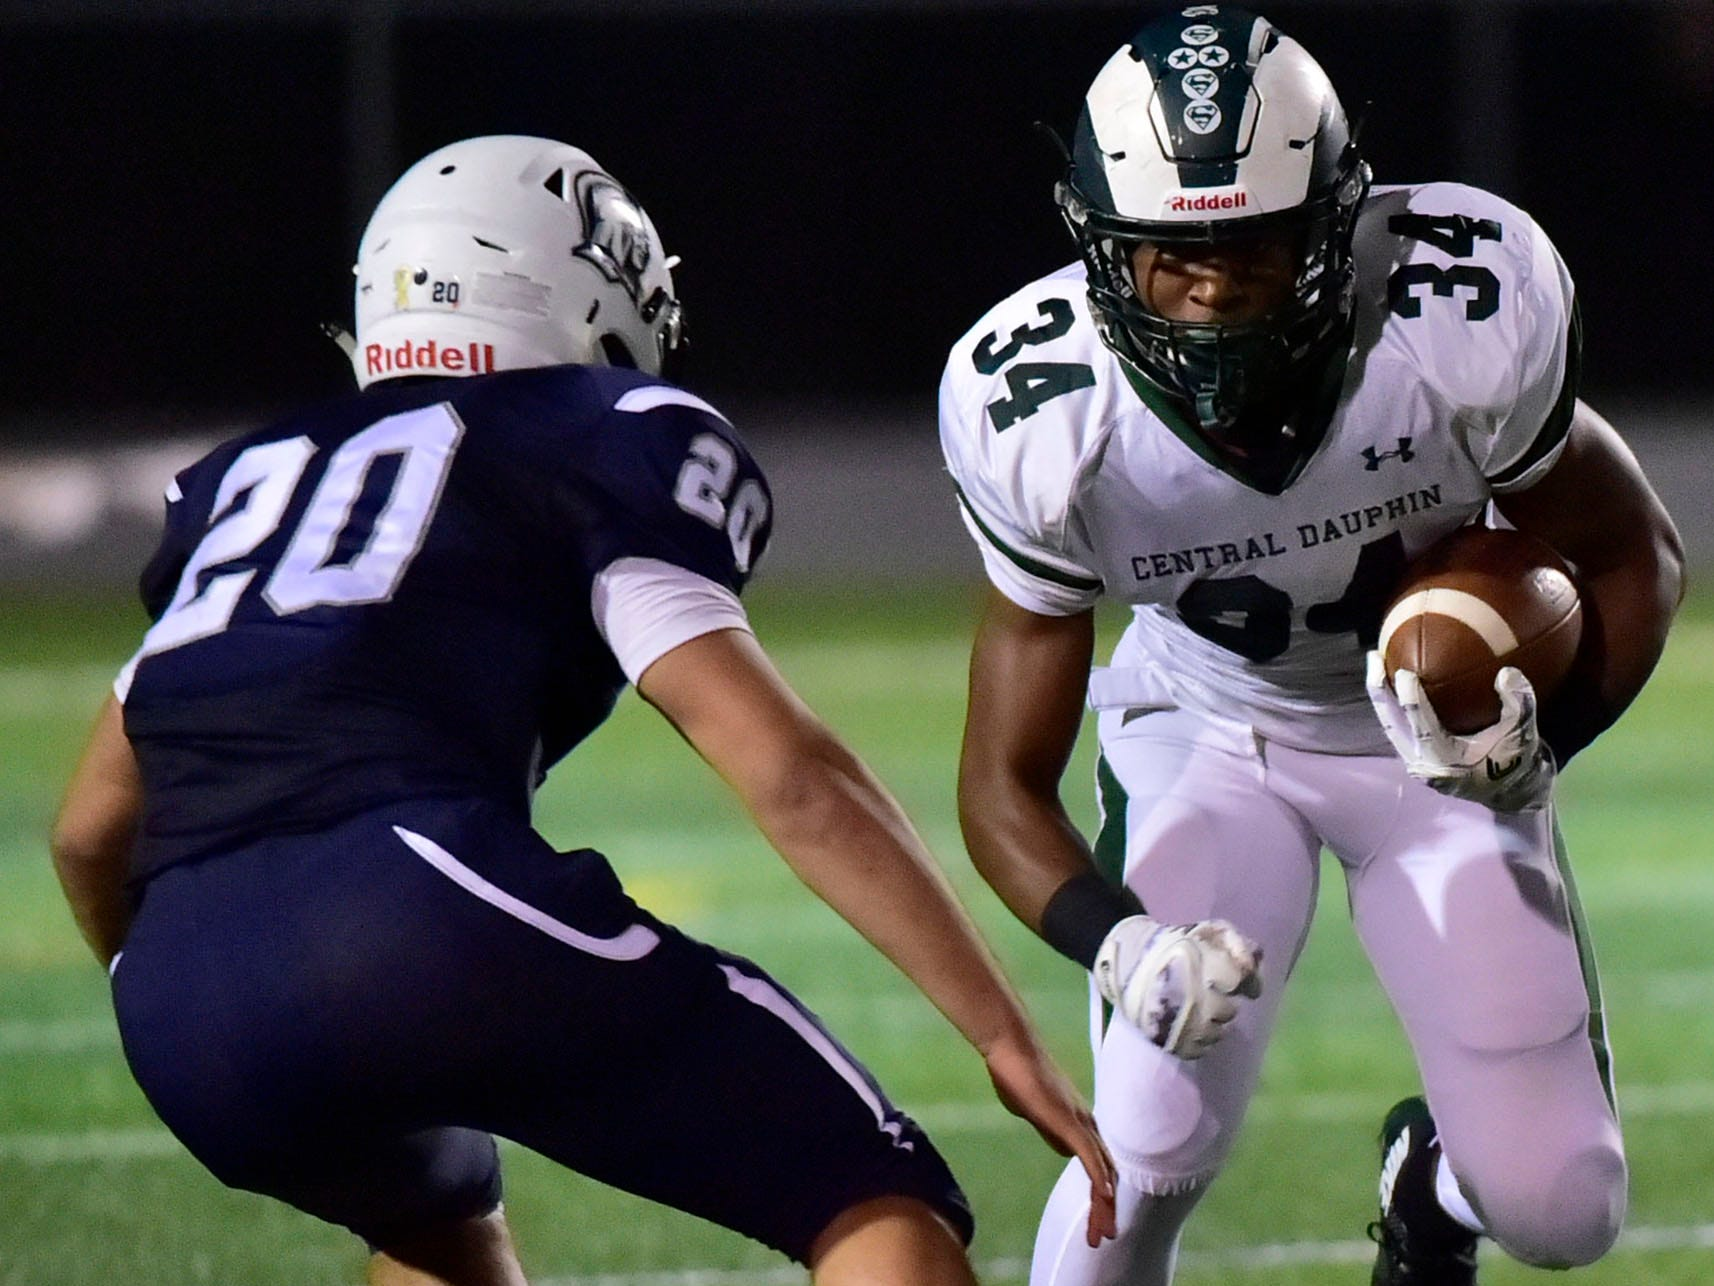 Central Dauphin's Timmy Smith runs the ball for the Rams. Chambersburg lost to Central Dauphin 35-14 in PIAA football on Friday, Oct. 19, 2018.